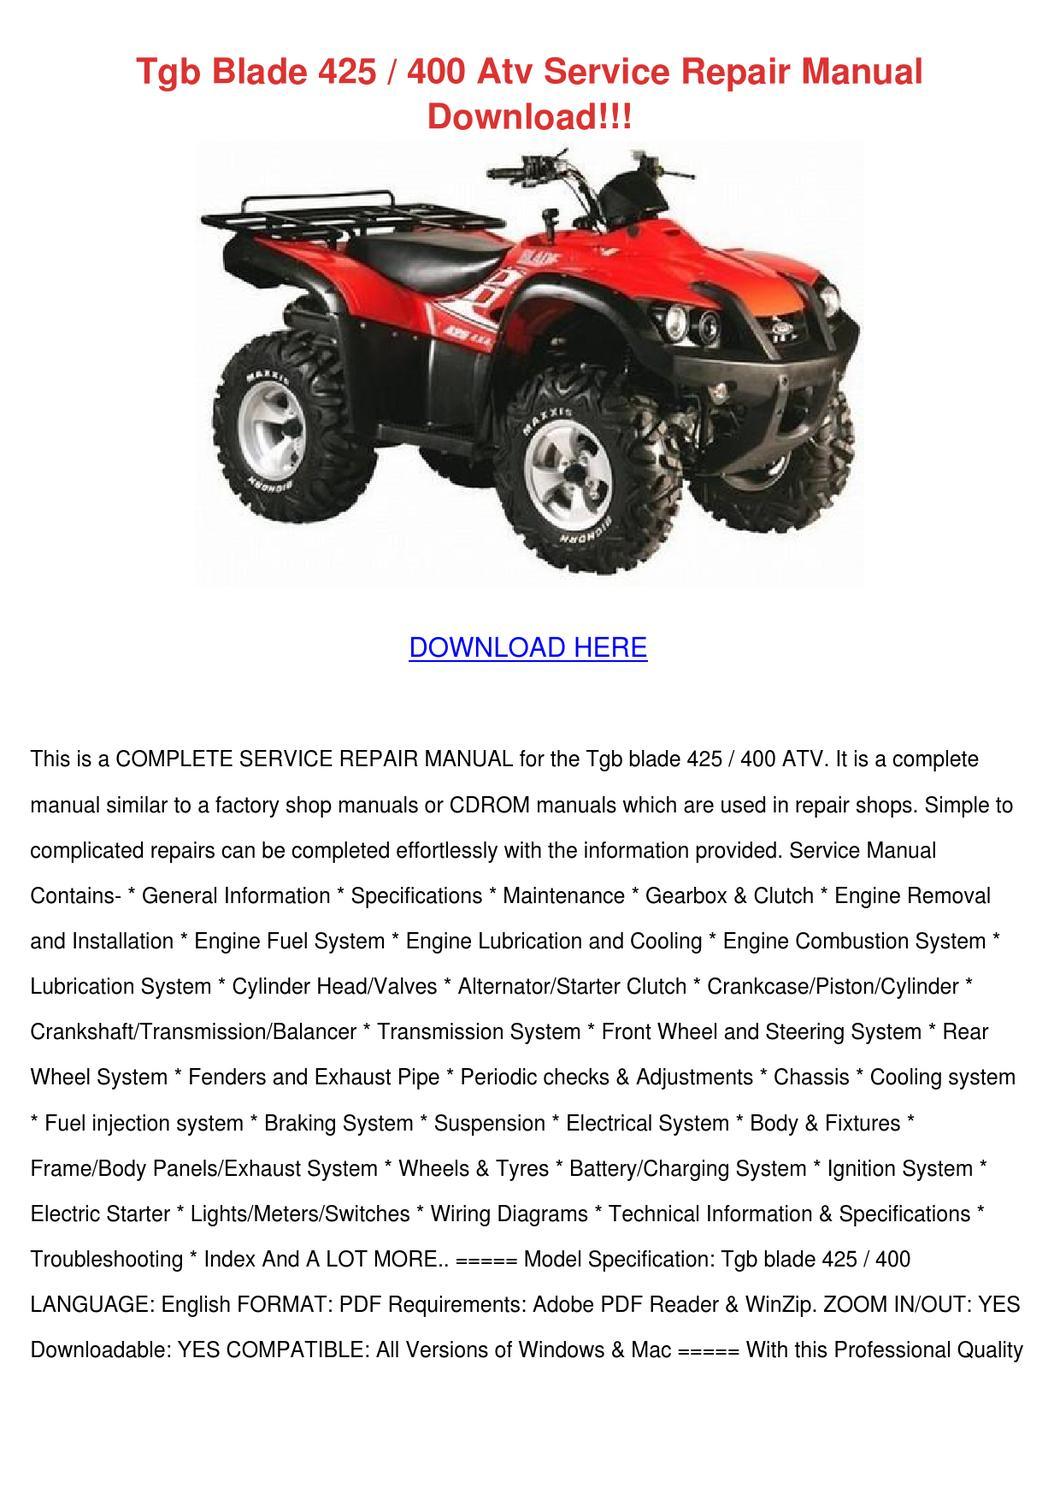 Tgb Blade 425 400 Atv Service Repair Manual D By Gloriadevlin